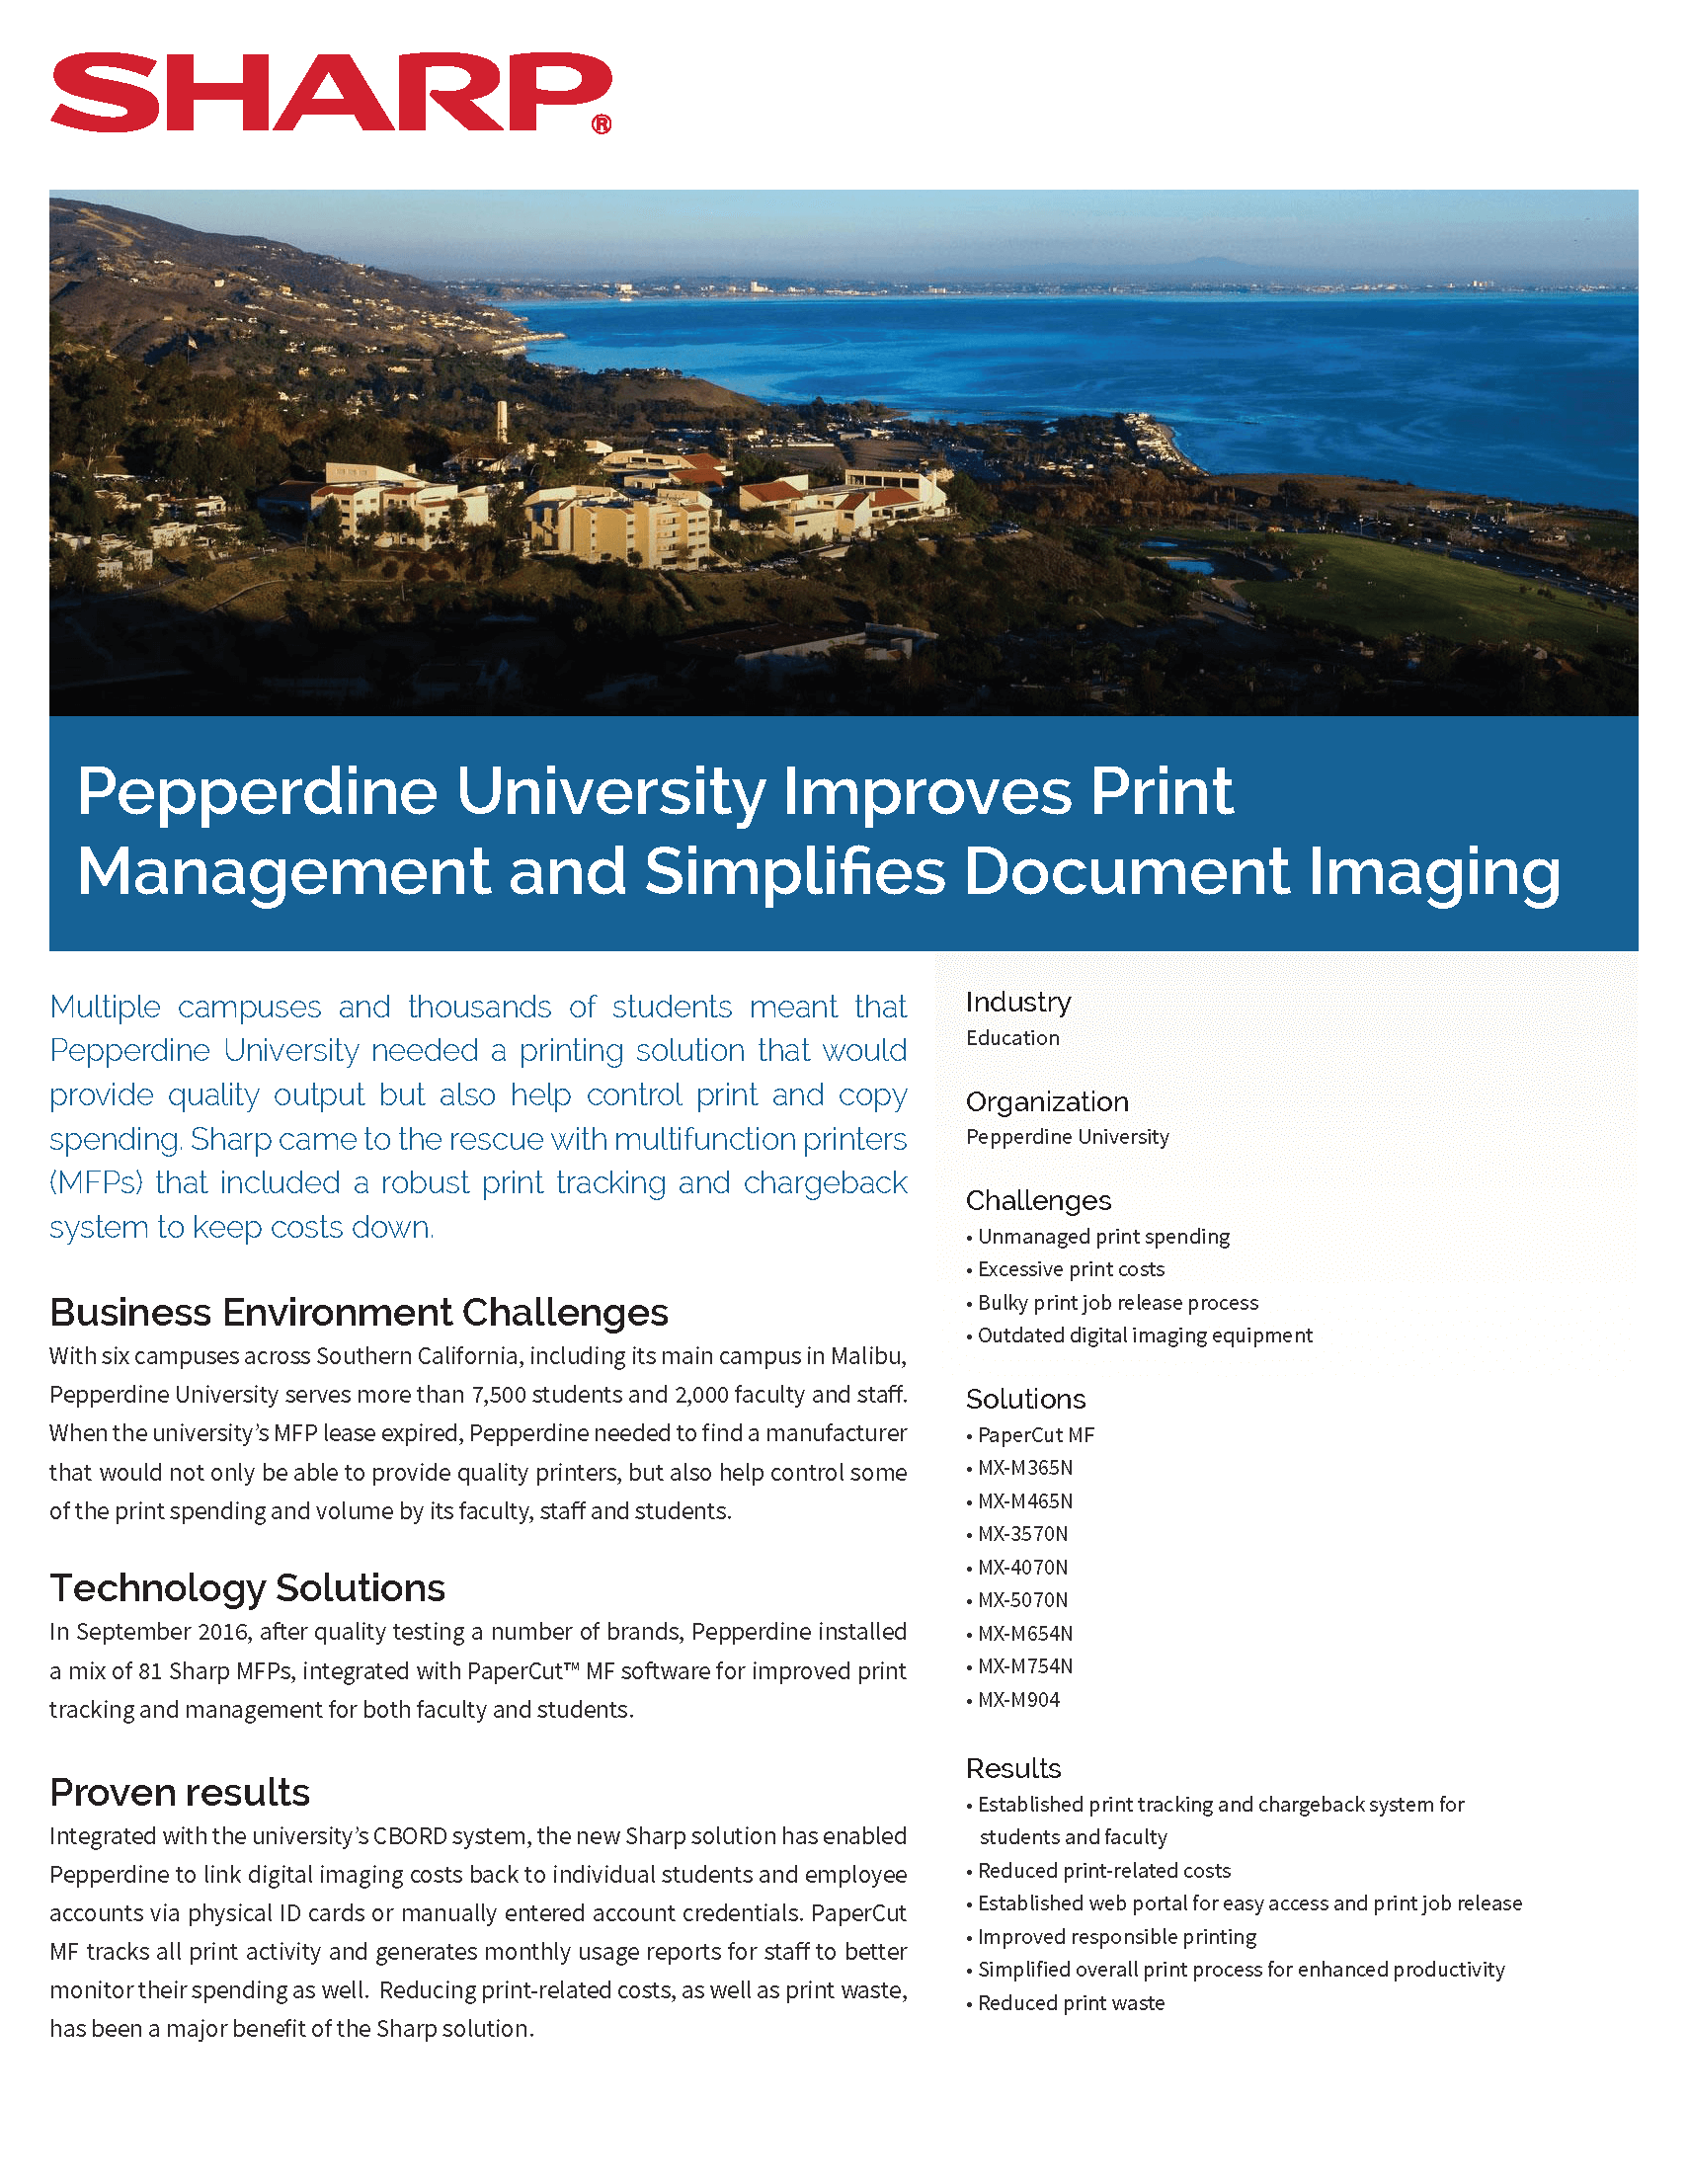 Pepperdine University simplifies printing and control of faculty/student usage